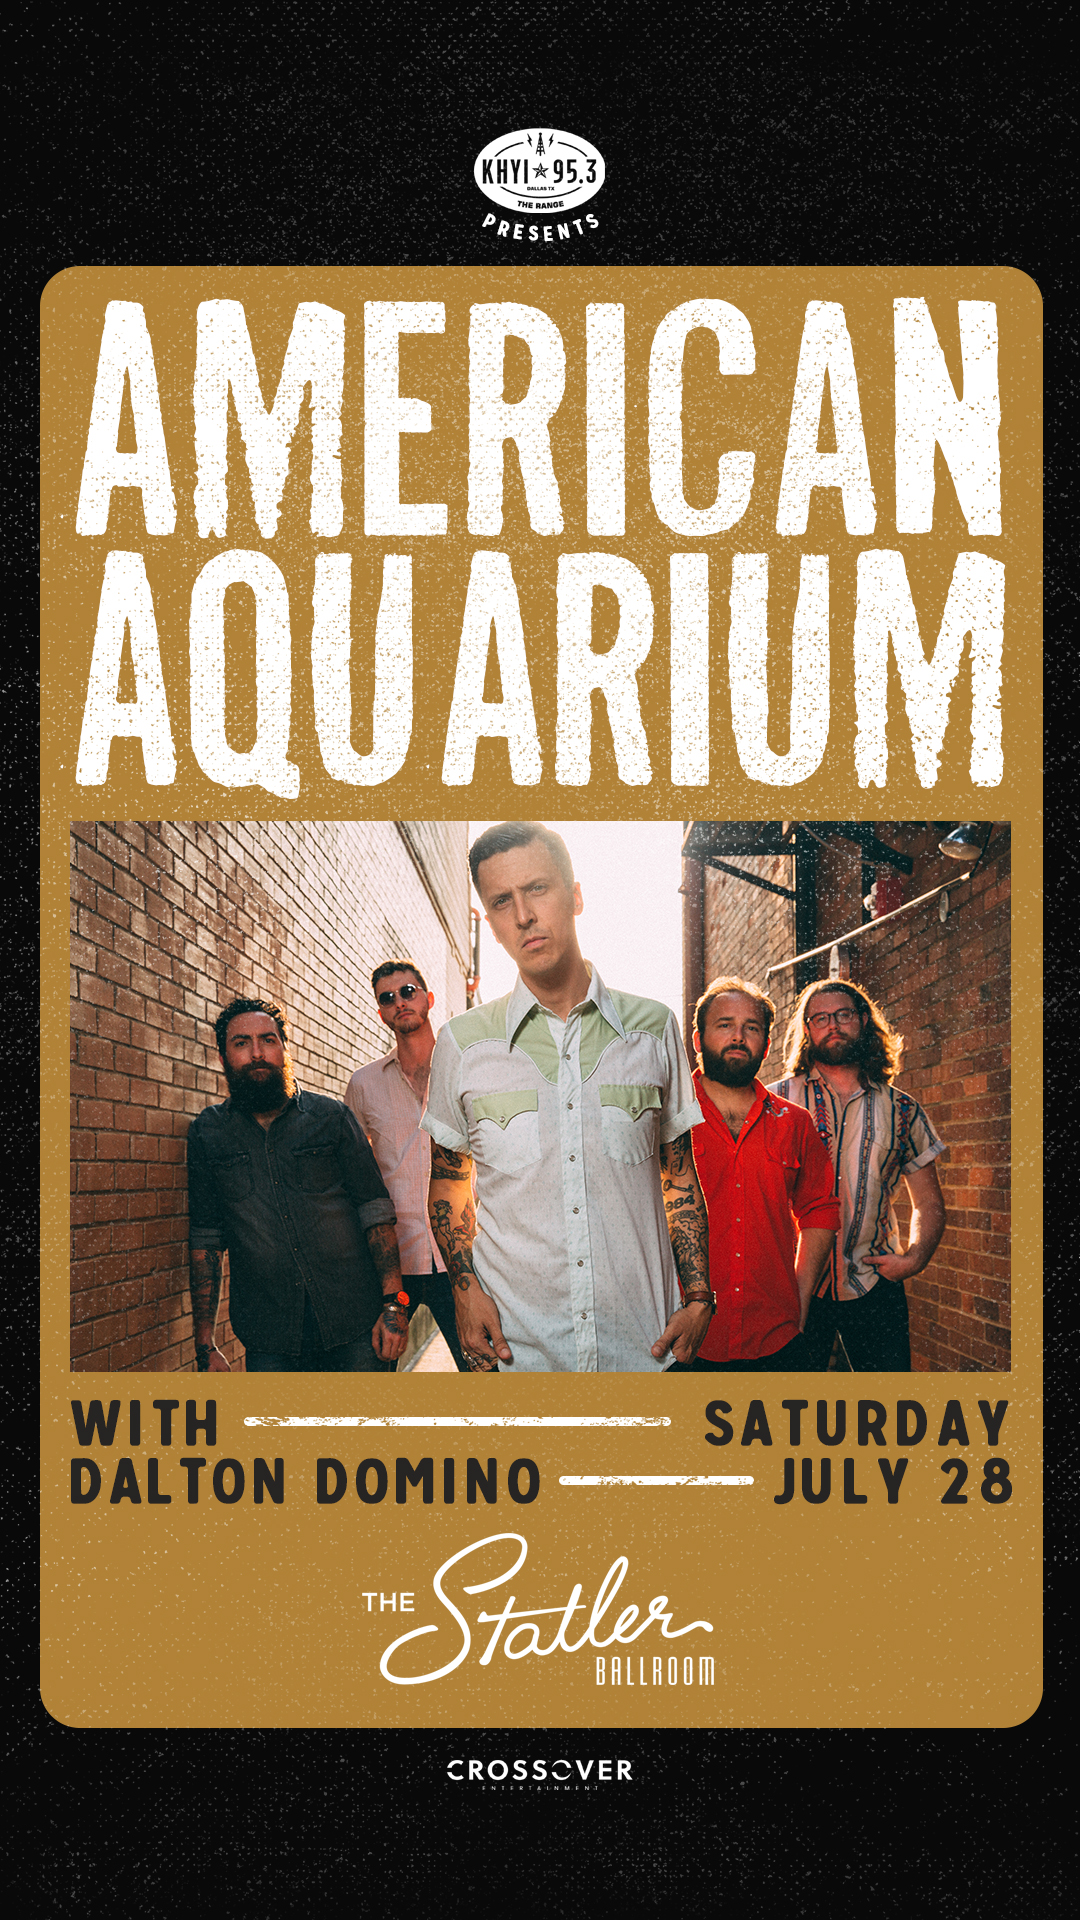 """American Aquarium is excited to announce their seventh studio album, Things Change,out on  New West Records . """"We recorded this album over nine days in Tulsa, OK with Grammy nominated  John Fullbright in the producer chair and  Wes Sharon (Turnpike Troubadours, Parker Millsap) sitting behind the knobs. It was mixed by  Ryan Hewitt (Johnny Cash, Red Hot Chili Peppers, Avett Brothers) in Nashville,TN and mastered by  Dave Collins (Bruce Springsteen, Weezer, Flogging Molly) in Los Angeles,CA."""" Don't miss the album release show at The Statler Ballroom.  Get tickets ."""